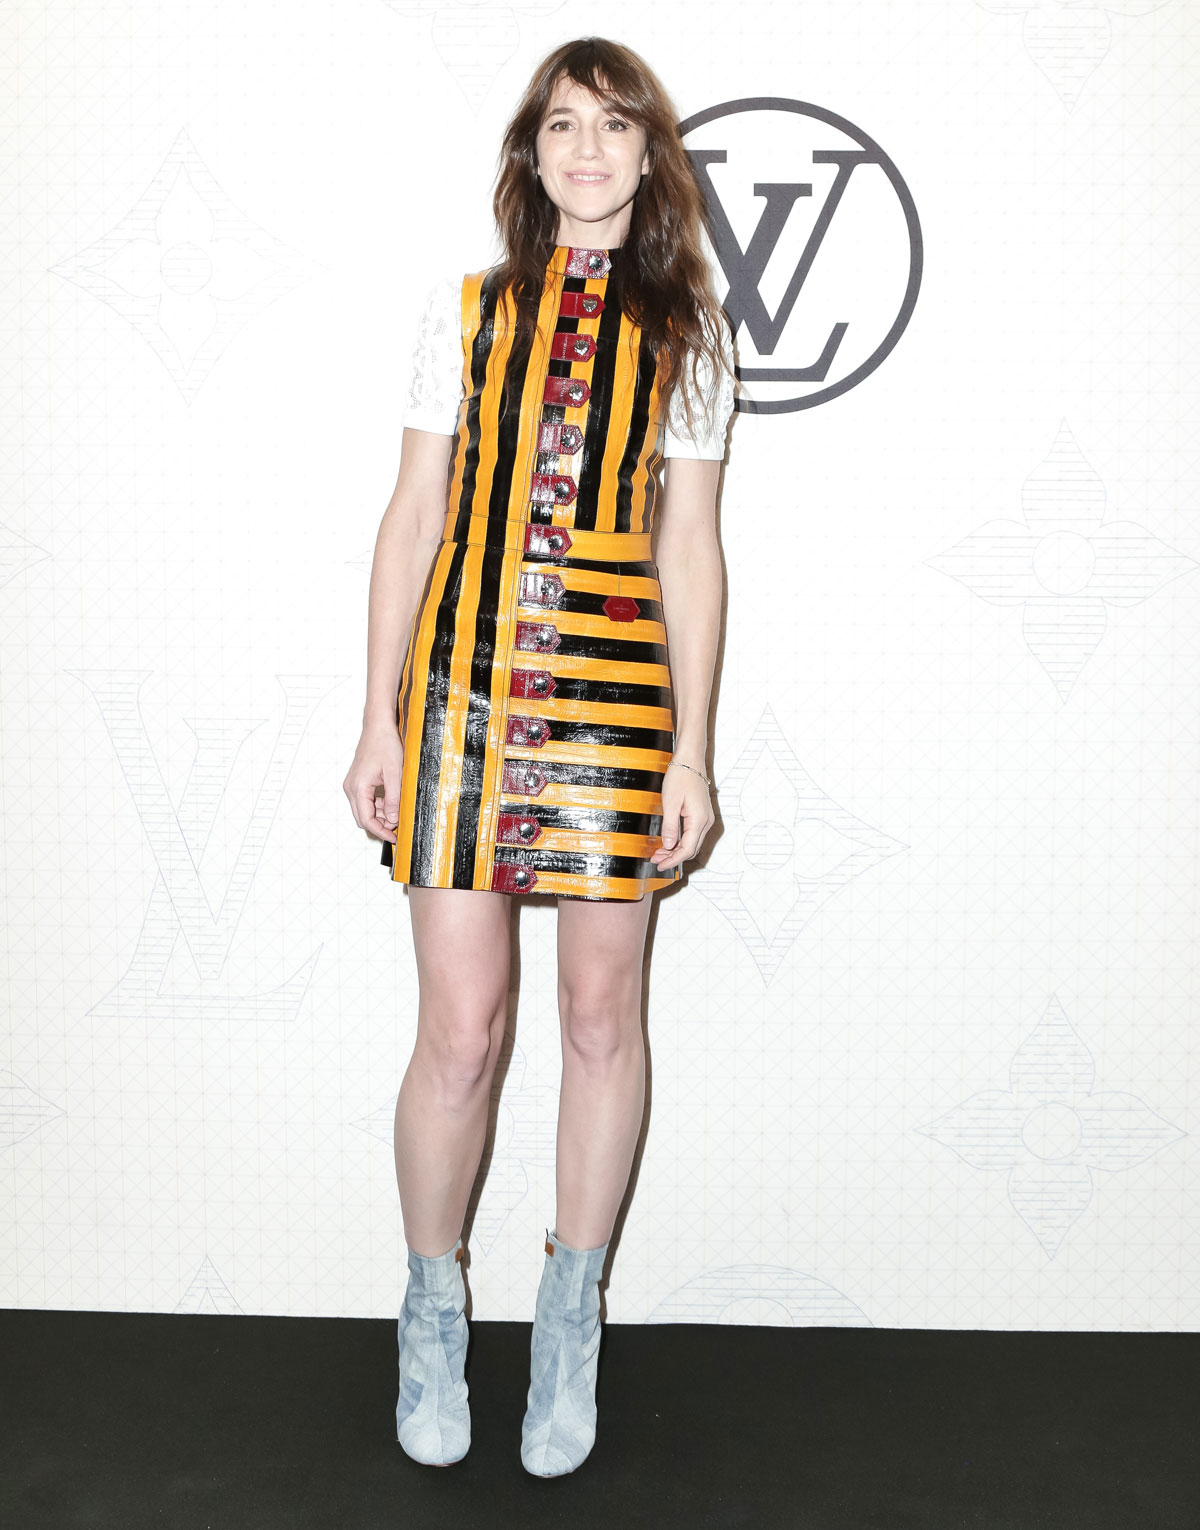 Charlotte Gainsbourg at Louis Vuitton Monogram celebration